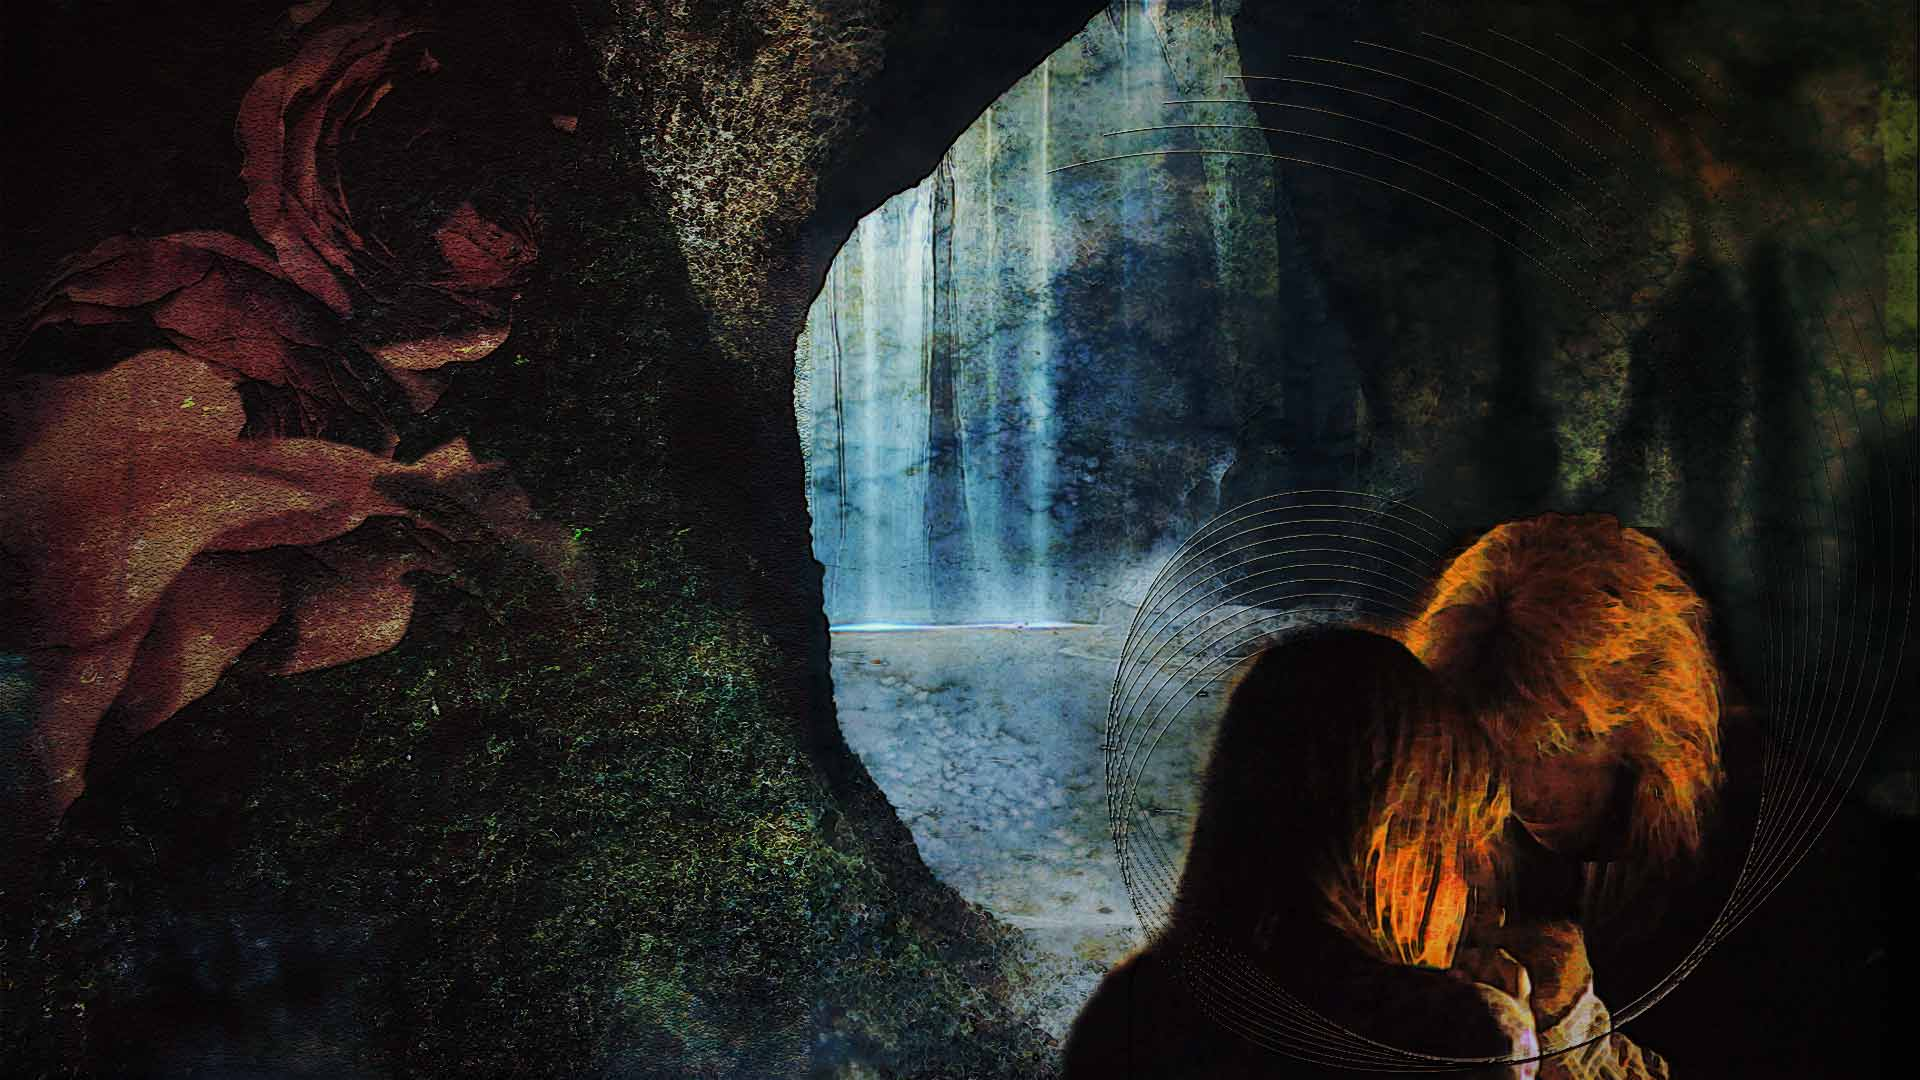 Catherine and Vincent in an intimate moment, holding hands, their foreheads touching, behind them the waterfall